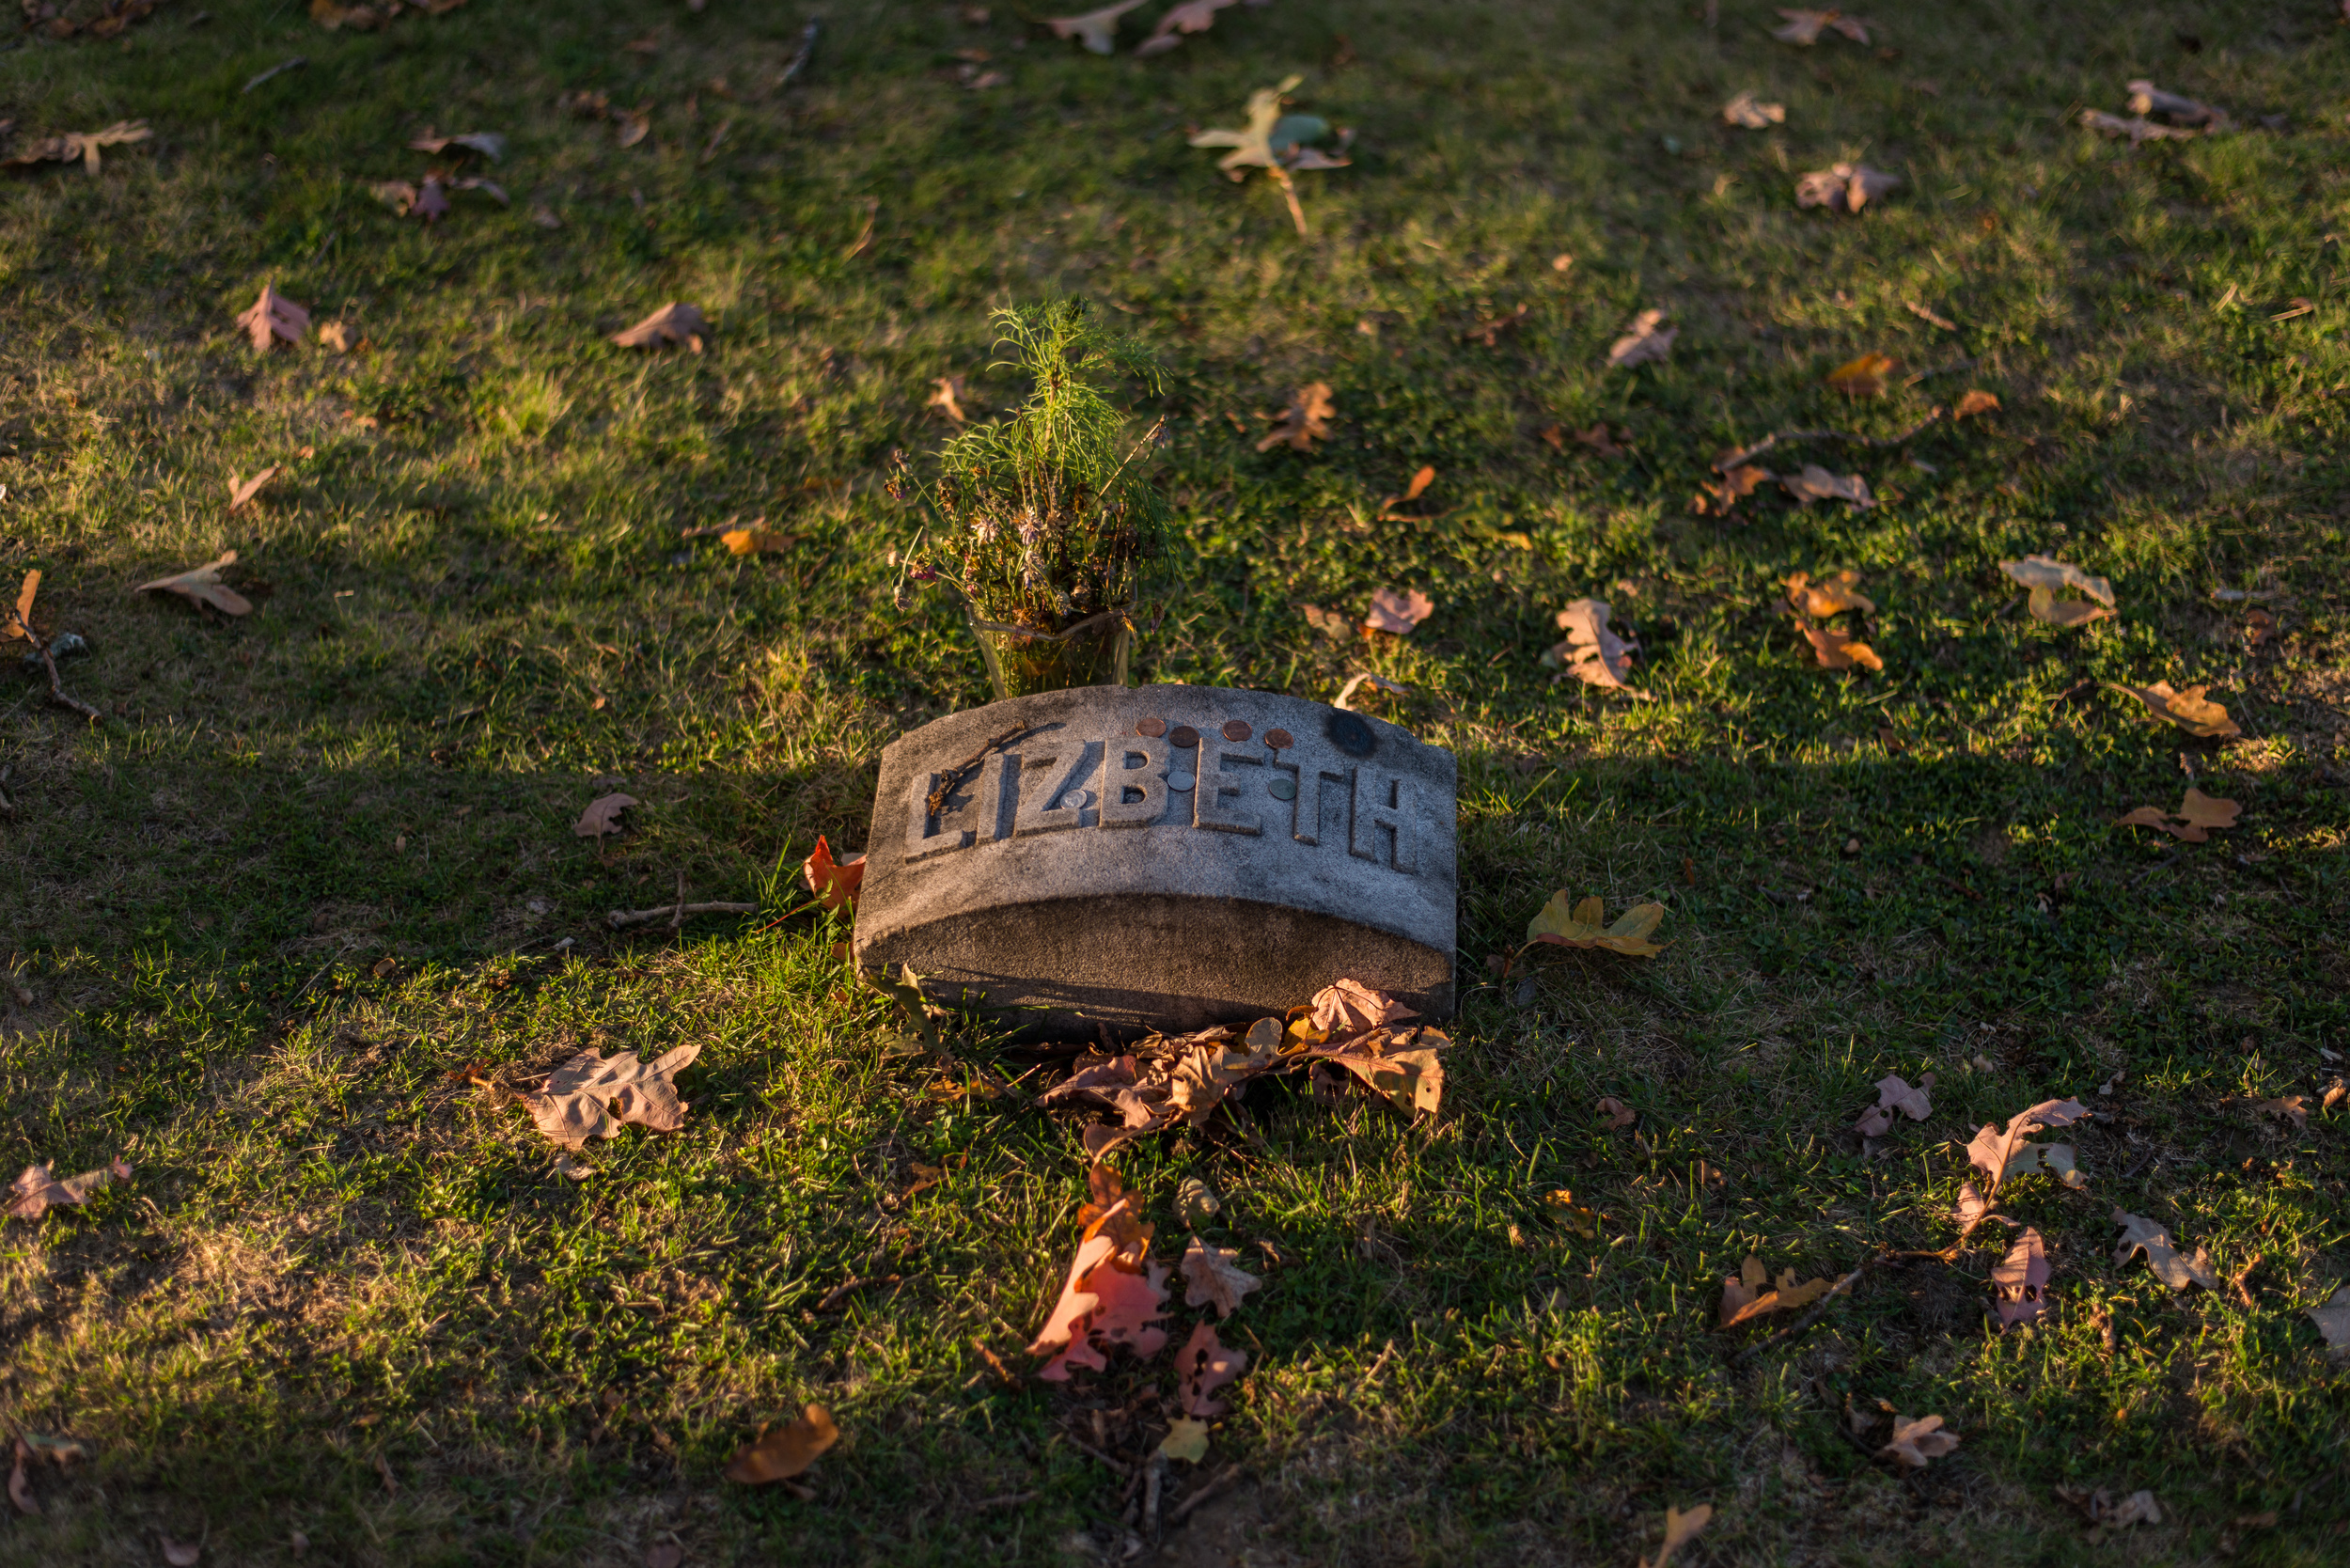 Lizzie   Borden Grave Marker (Changed her first name to Lizbeth after the trial)